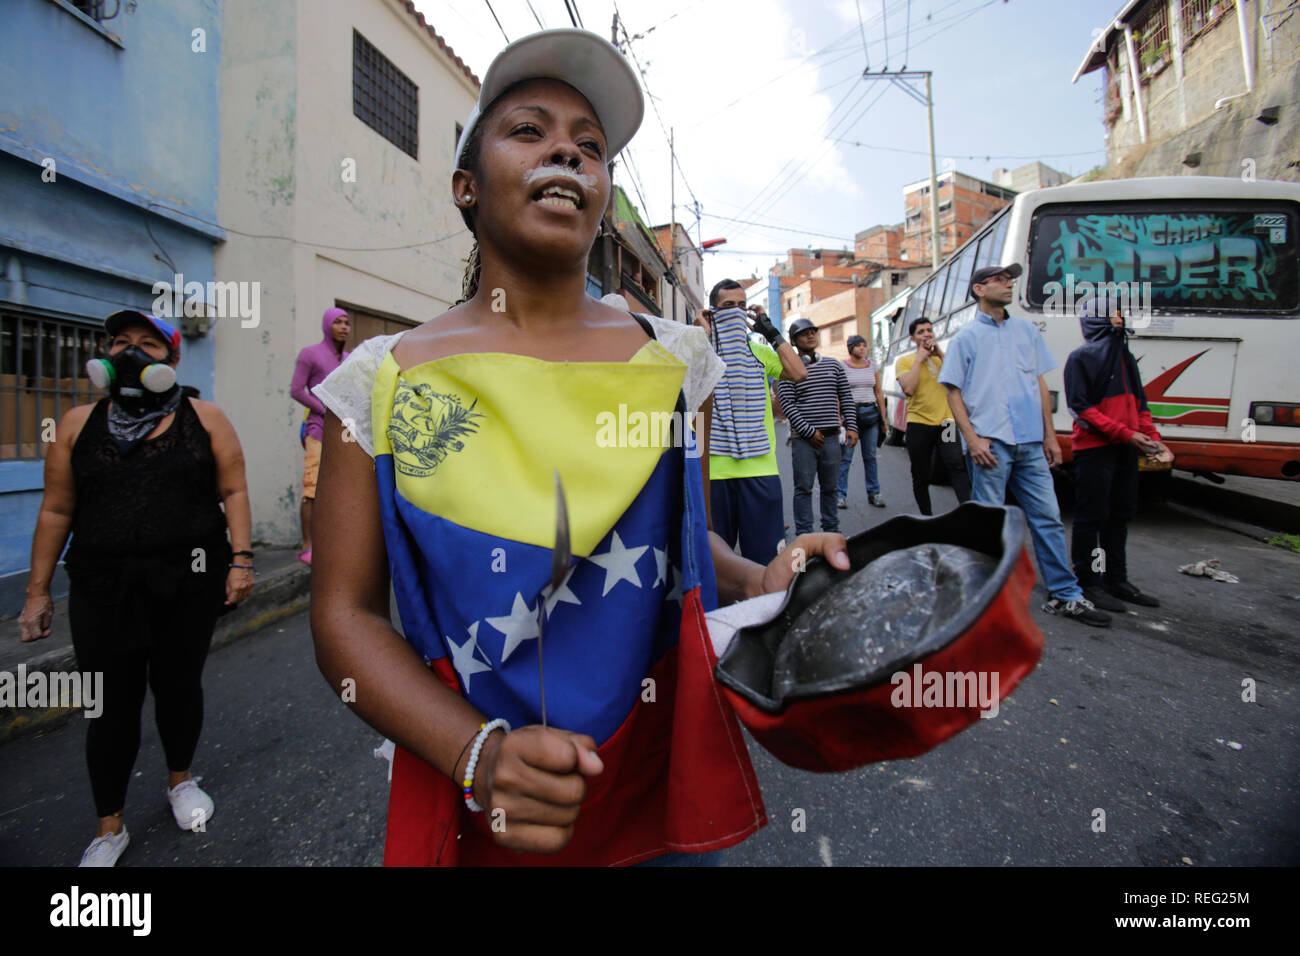 21 January 2019, Venezuela, Caracas: A woman hits a pot with a spoon in a protest in support of a mutiny by national guards against the government of Maduro. Many demonstrators wore toothpaste on their upper lip to defend themselves against tear gas. 'Take to the streets and protest, claim your rights. Here we are to fight for you, for Venezuela,' a national guard had called for a mutiny. Local residents went out into the streets. The mutiny is said to have been suppressed by security forces. The government blamed a conspiracy of right-wing circles for the uprising. Photo: Boris Vergara/dpa Cr - Stock Image